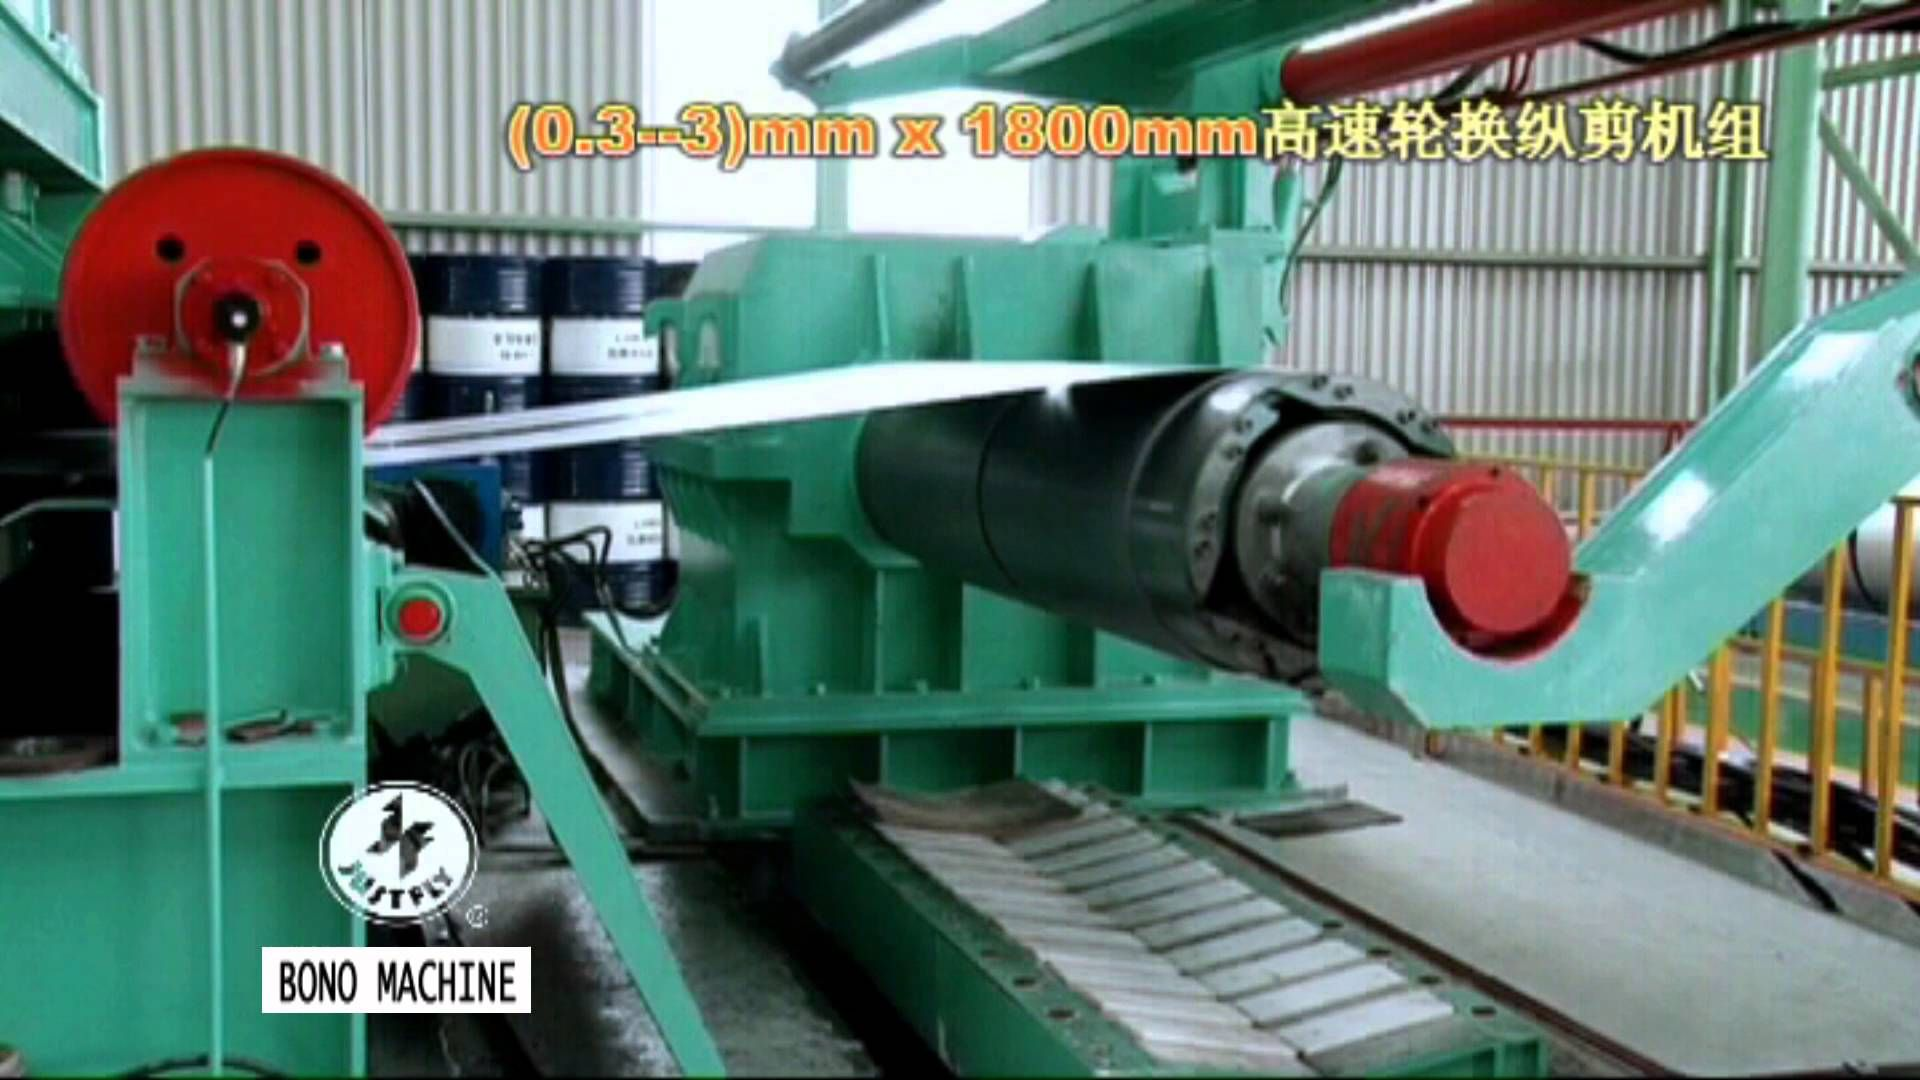 (0.3-3.0)X1800MM CR Slitting Machine with exchange two slitter